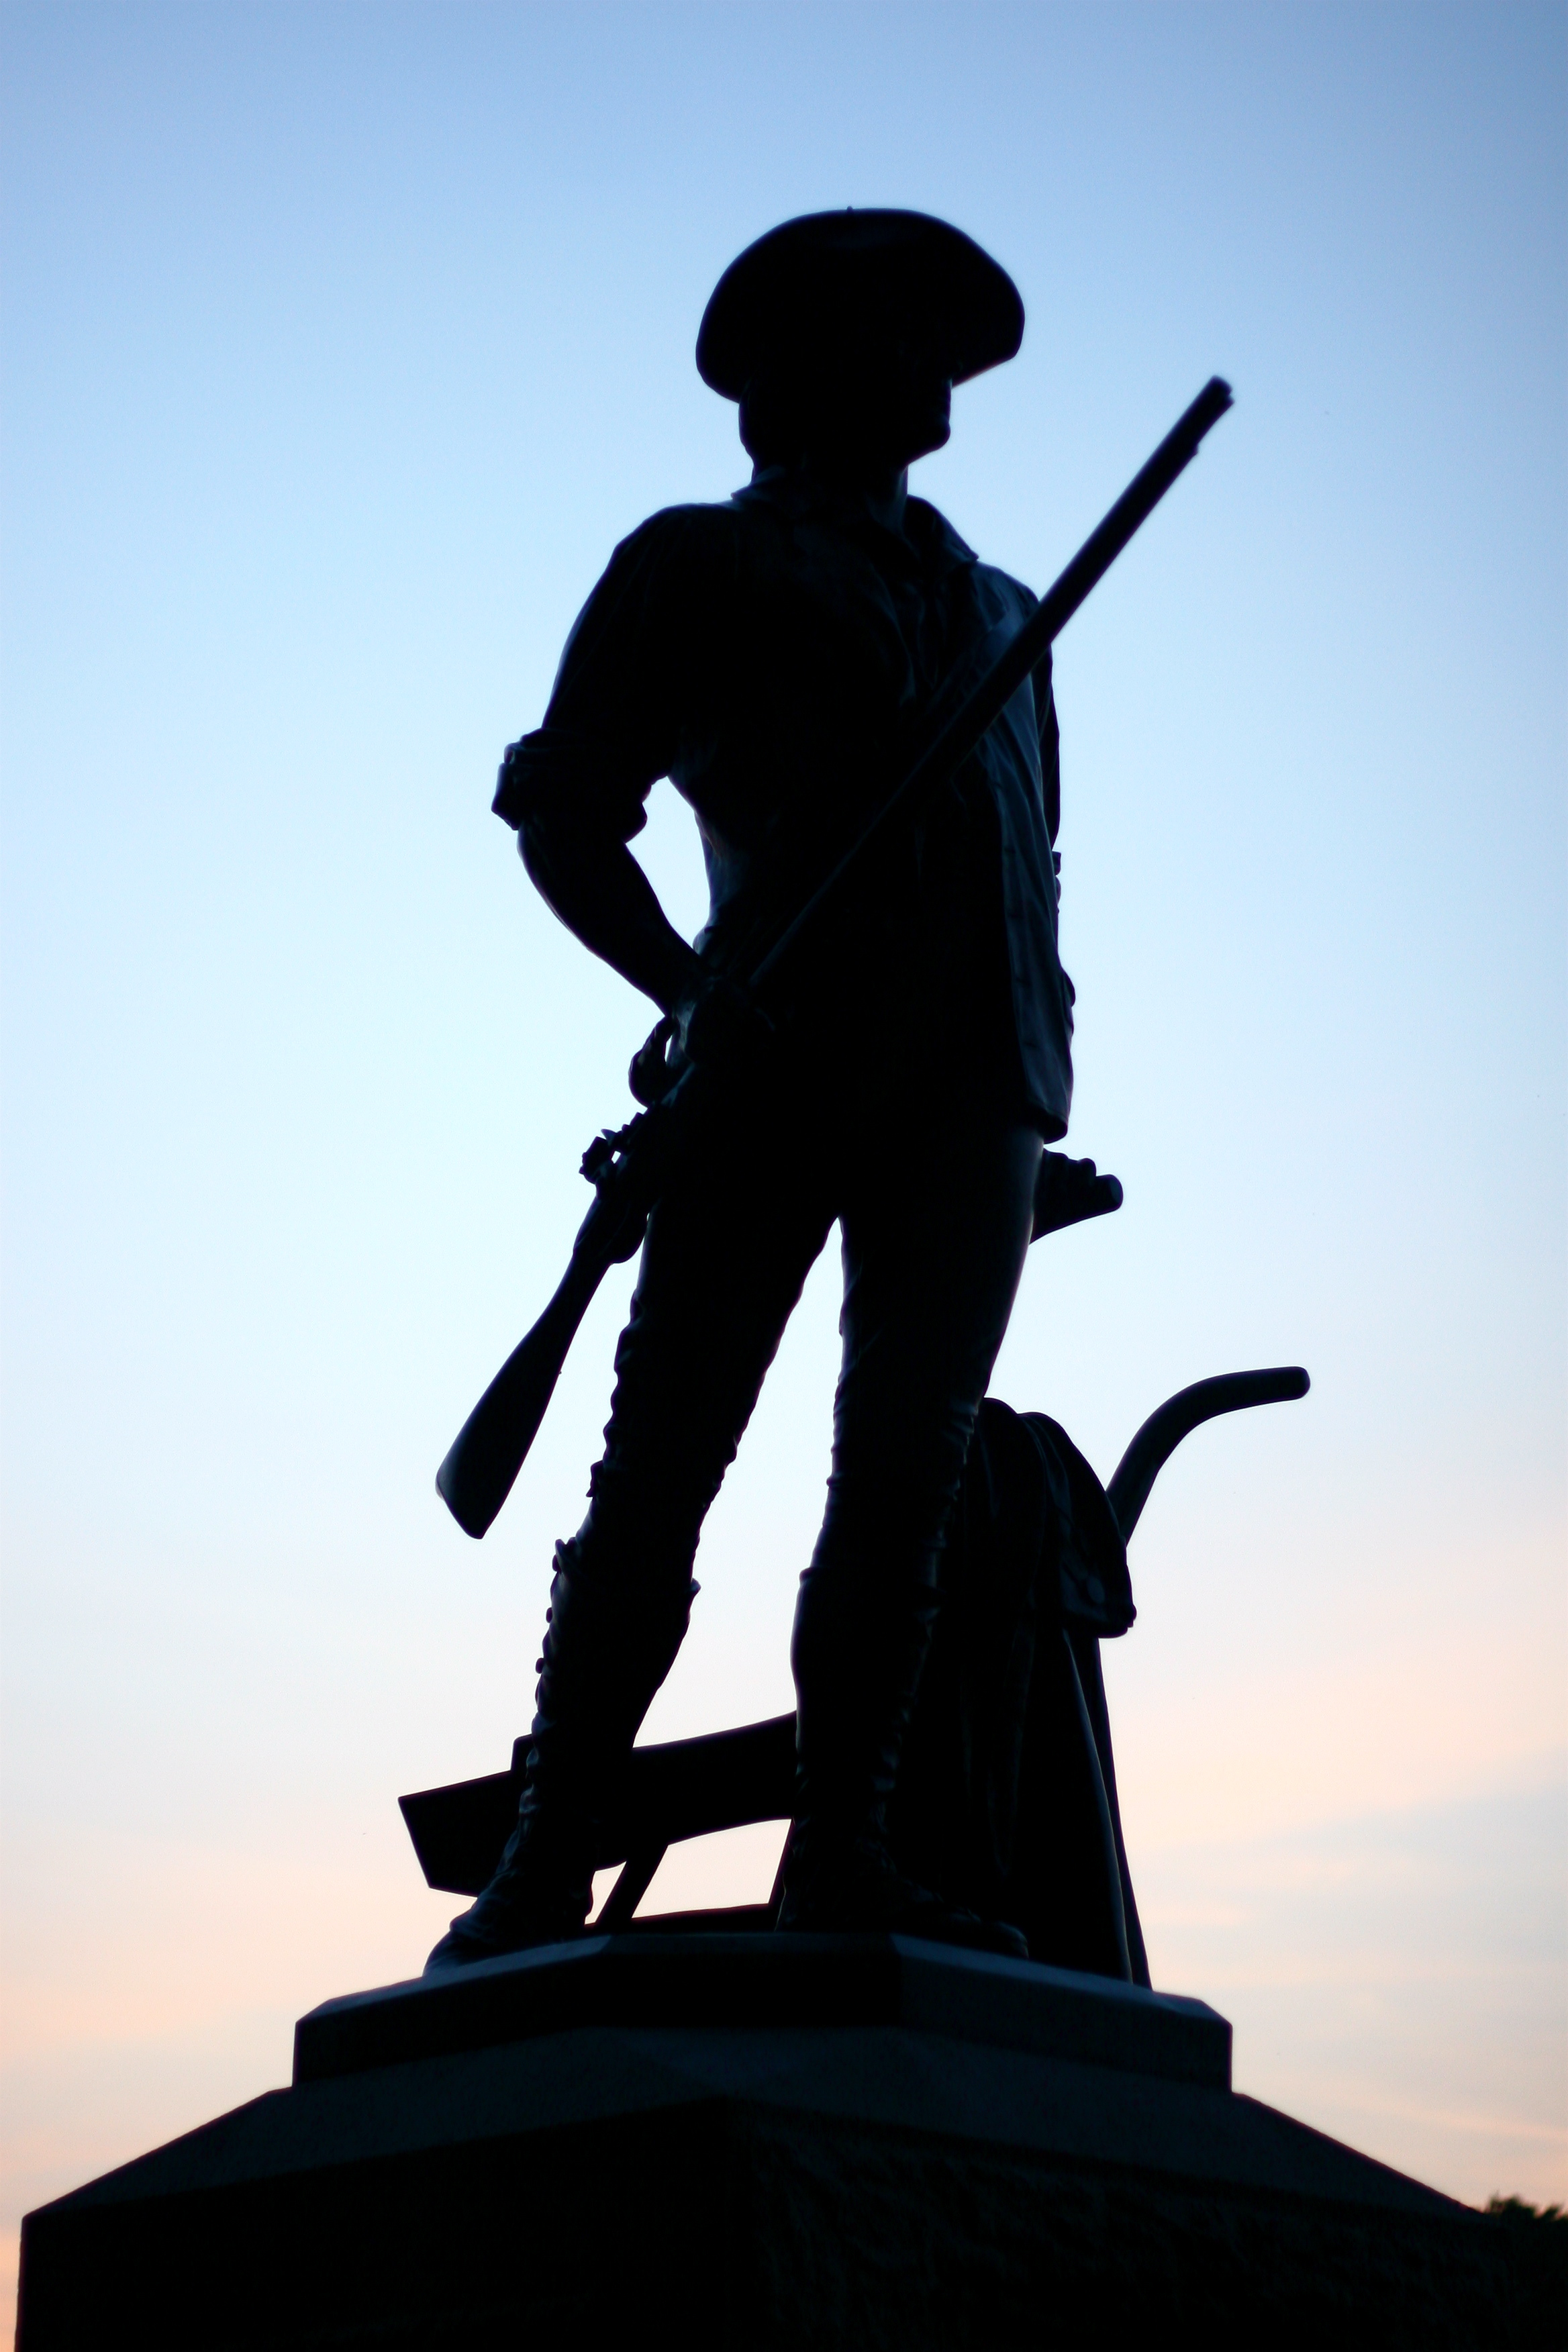 Minuteman statue at sunset.